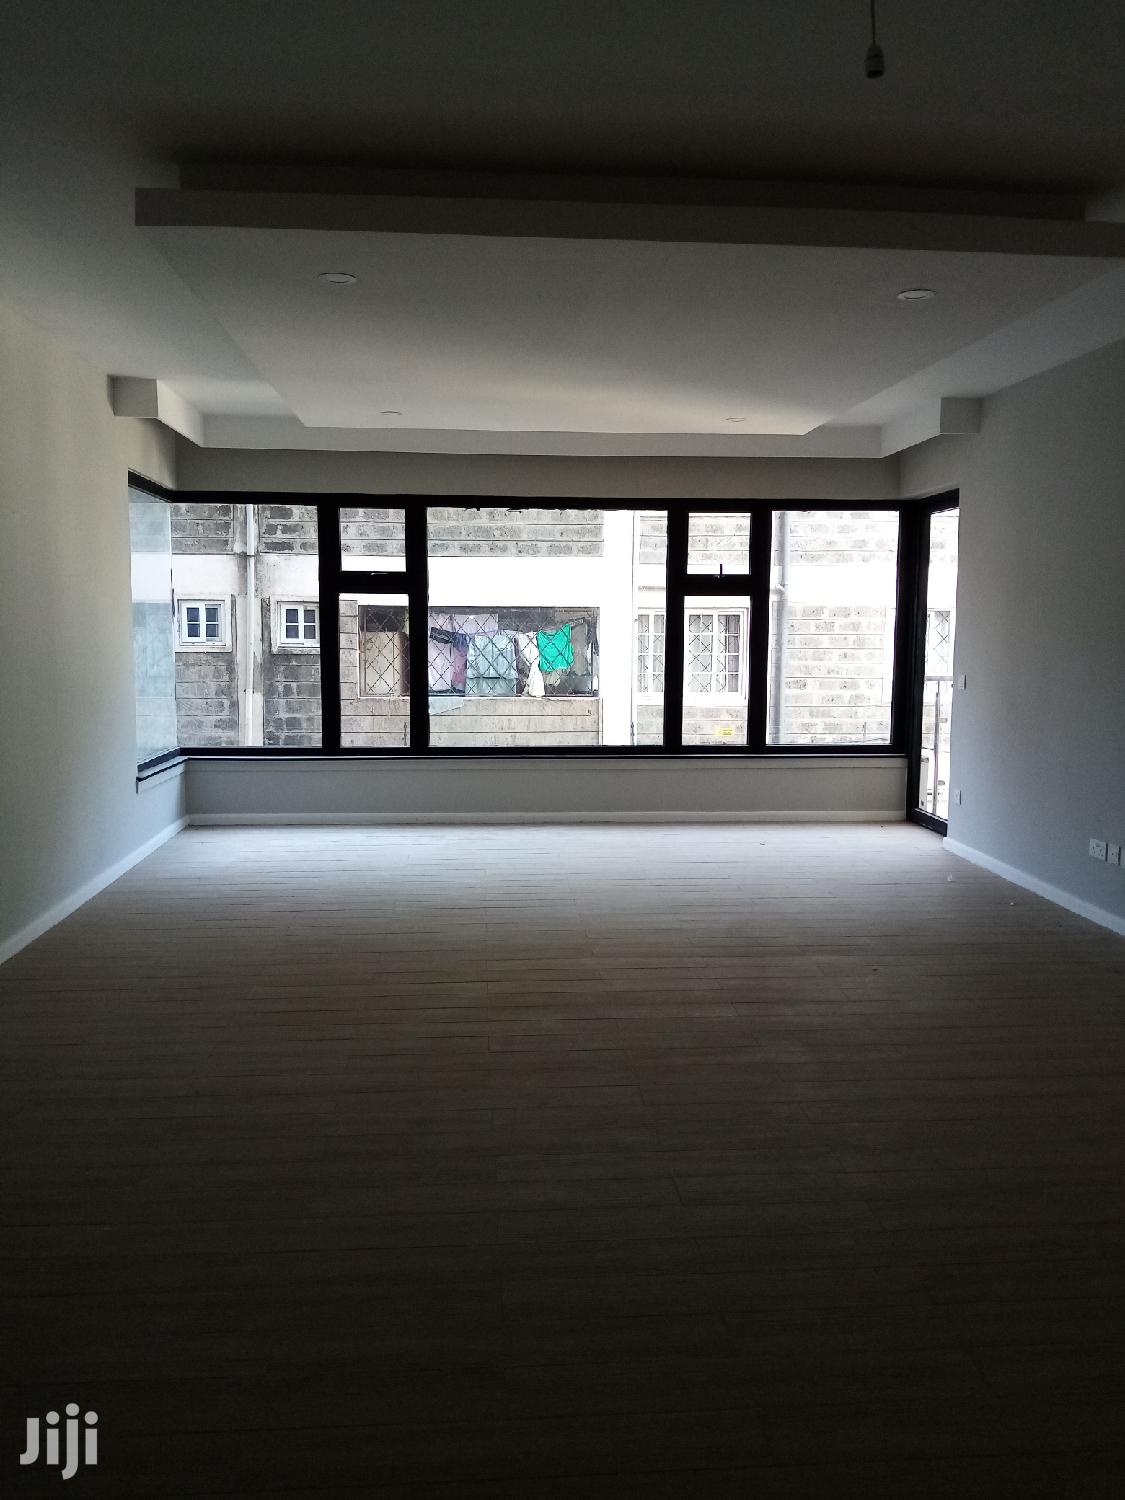 Property World,2brs Apartment With Lift Pool,Gym and Secure   Houses & Apartments For Sale for sale in Lavington, Nairobi, Kenya